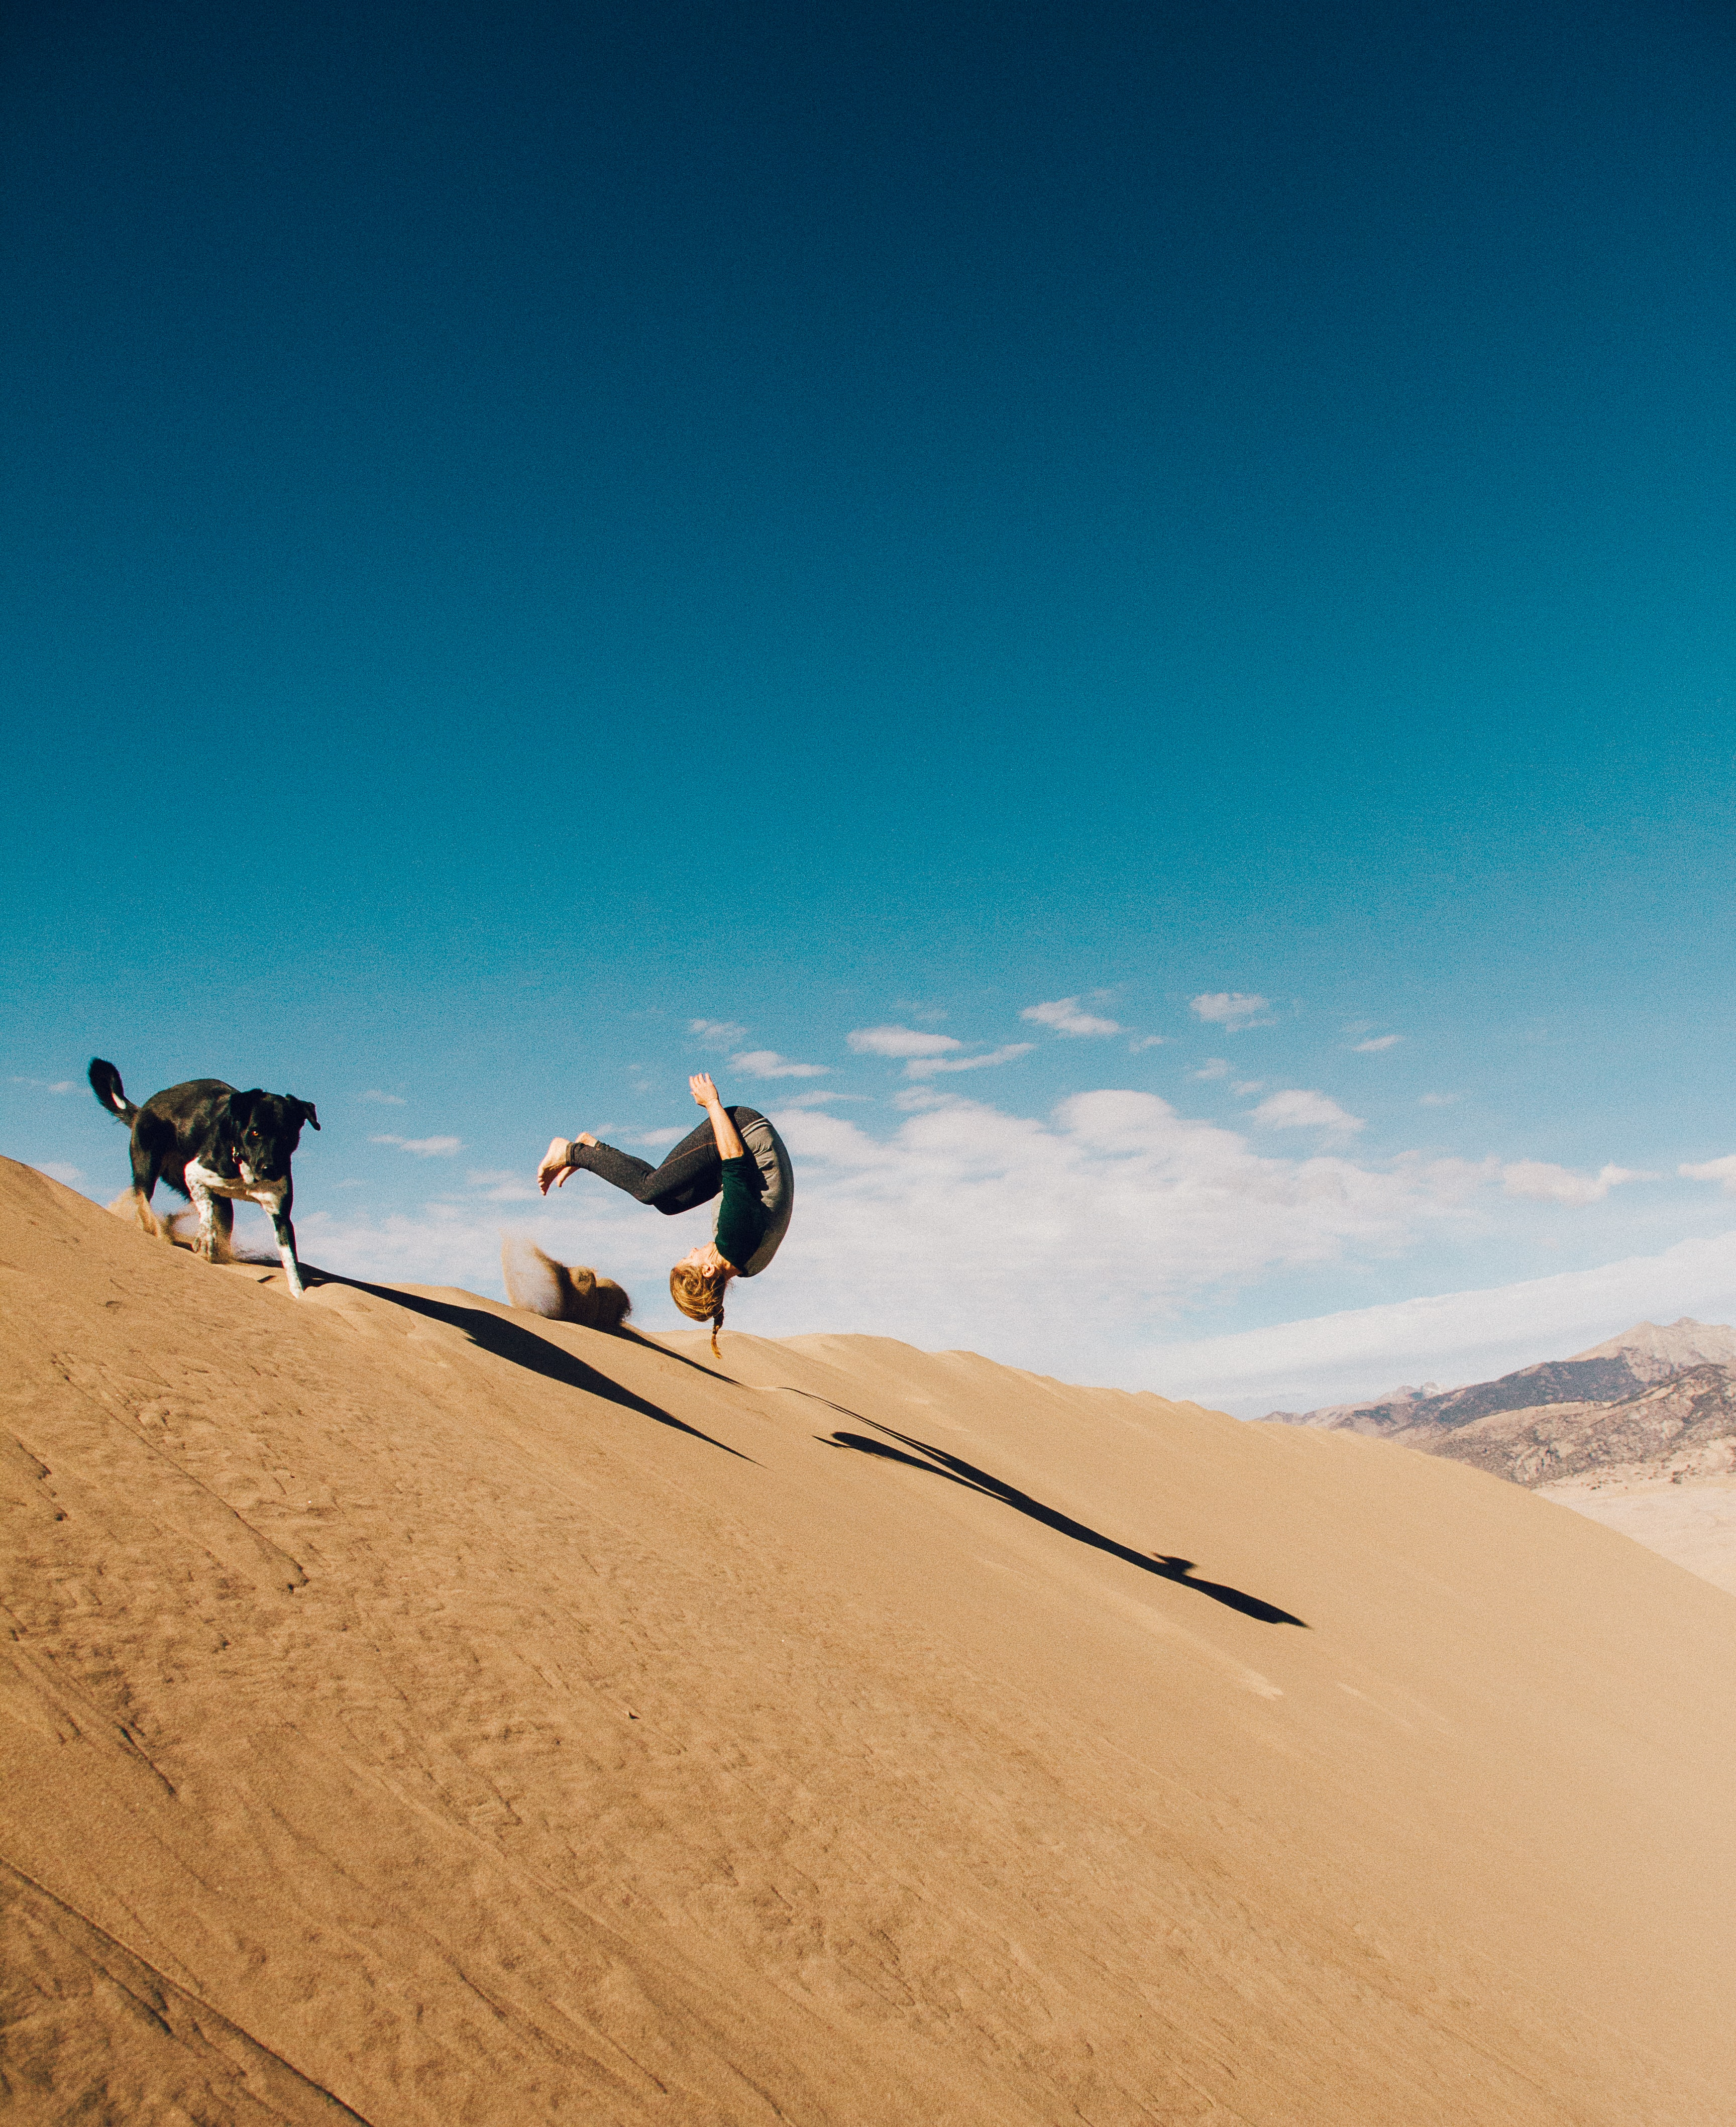 person doing back-flip in the desert dune